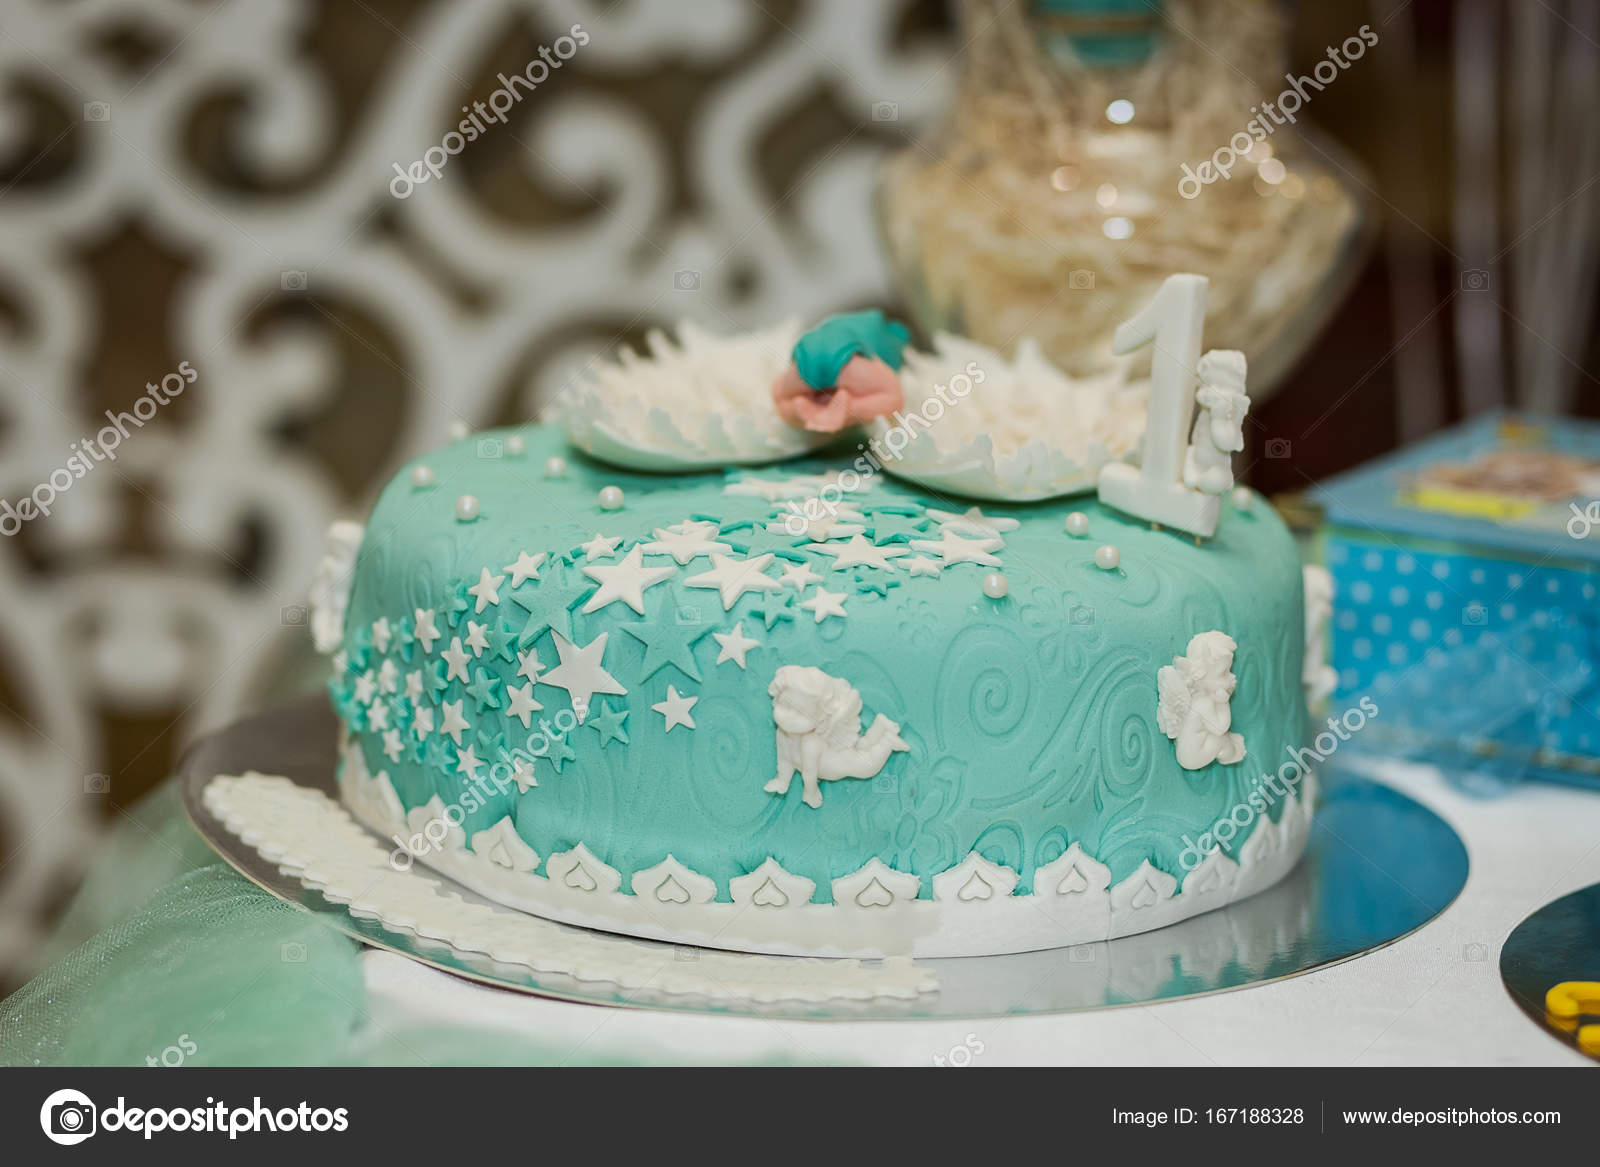 Cake Royal and other desserts